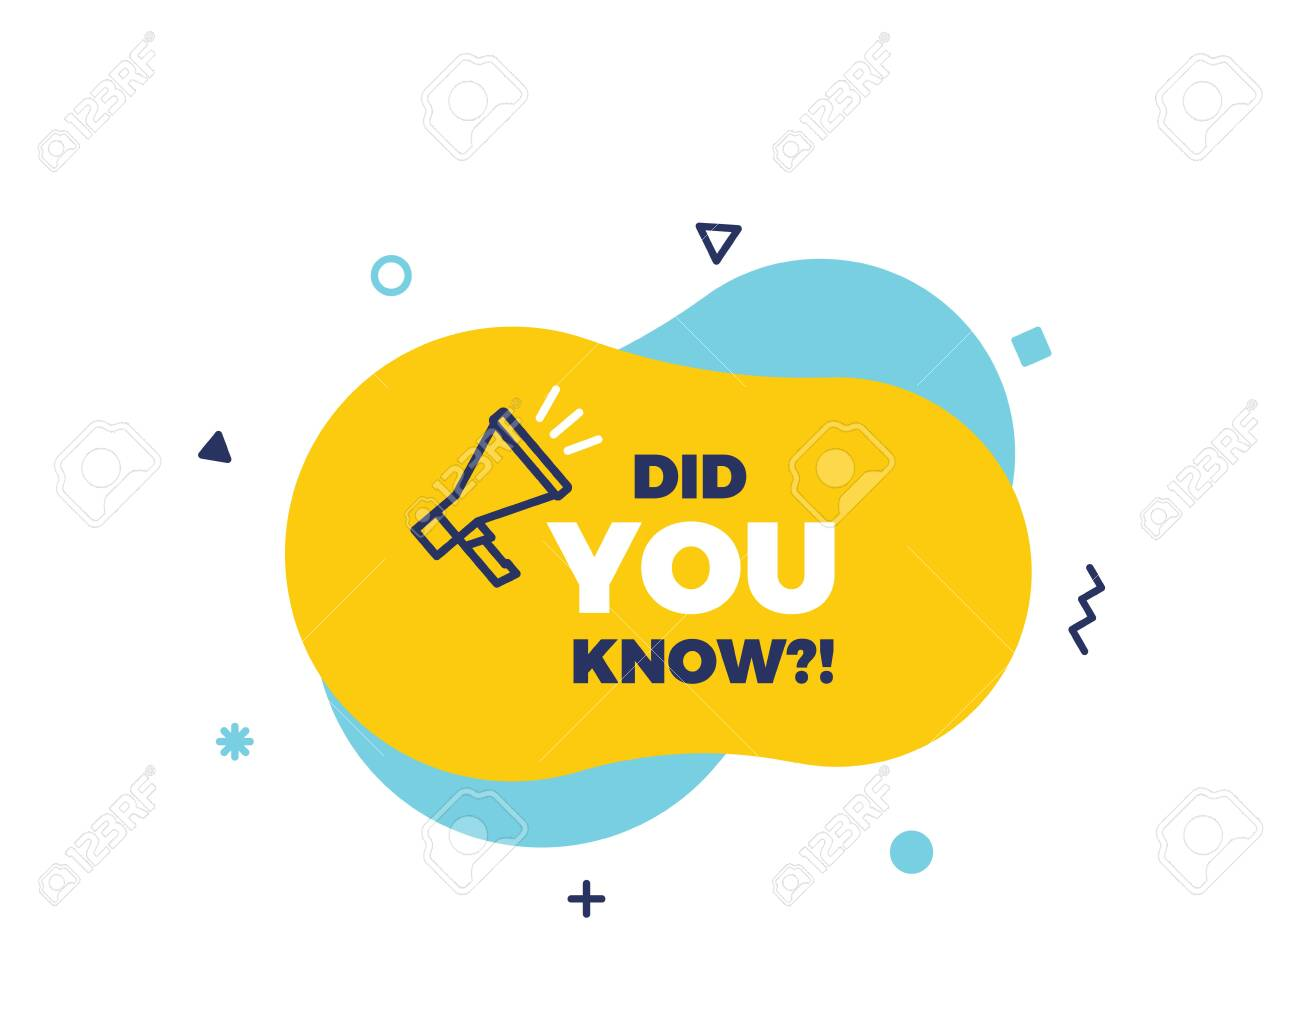 Did you know text on a fluid trendy shape with geometric elements and a megaphone. Vector design banner isolated for curiosity, knowledge, quiz games, trivia and other concepts - 126332869